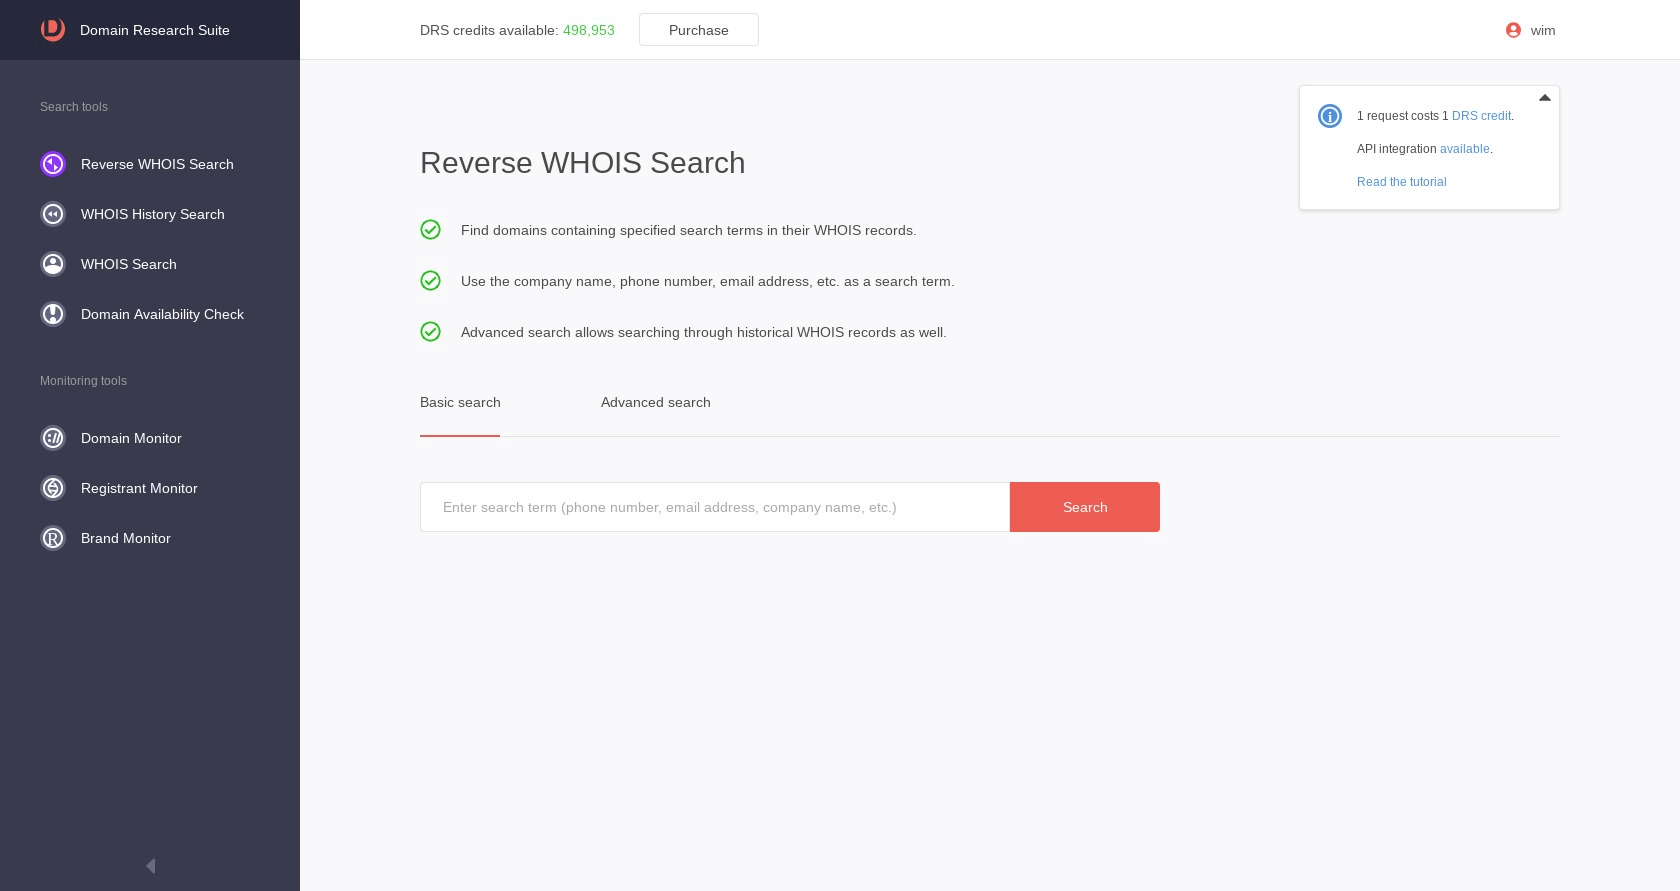 WHOISXMLAPI Domain Research Suite